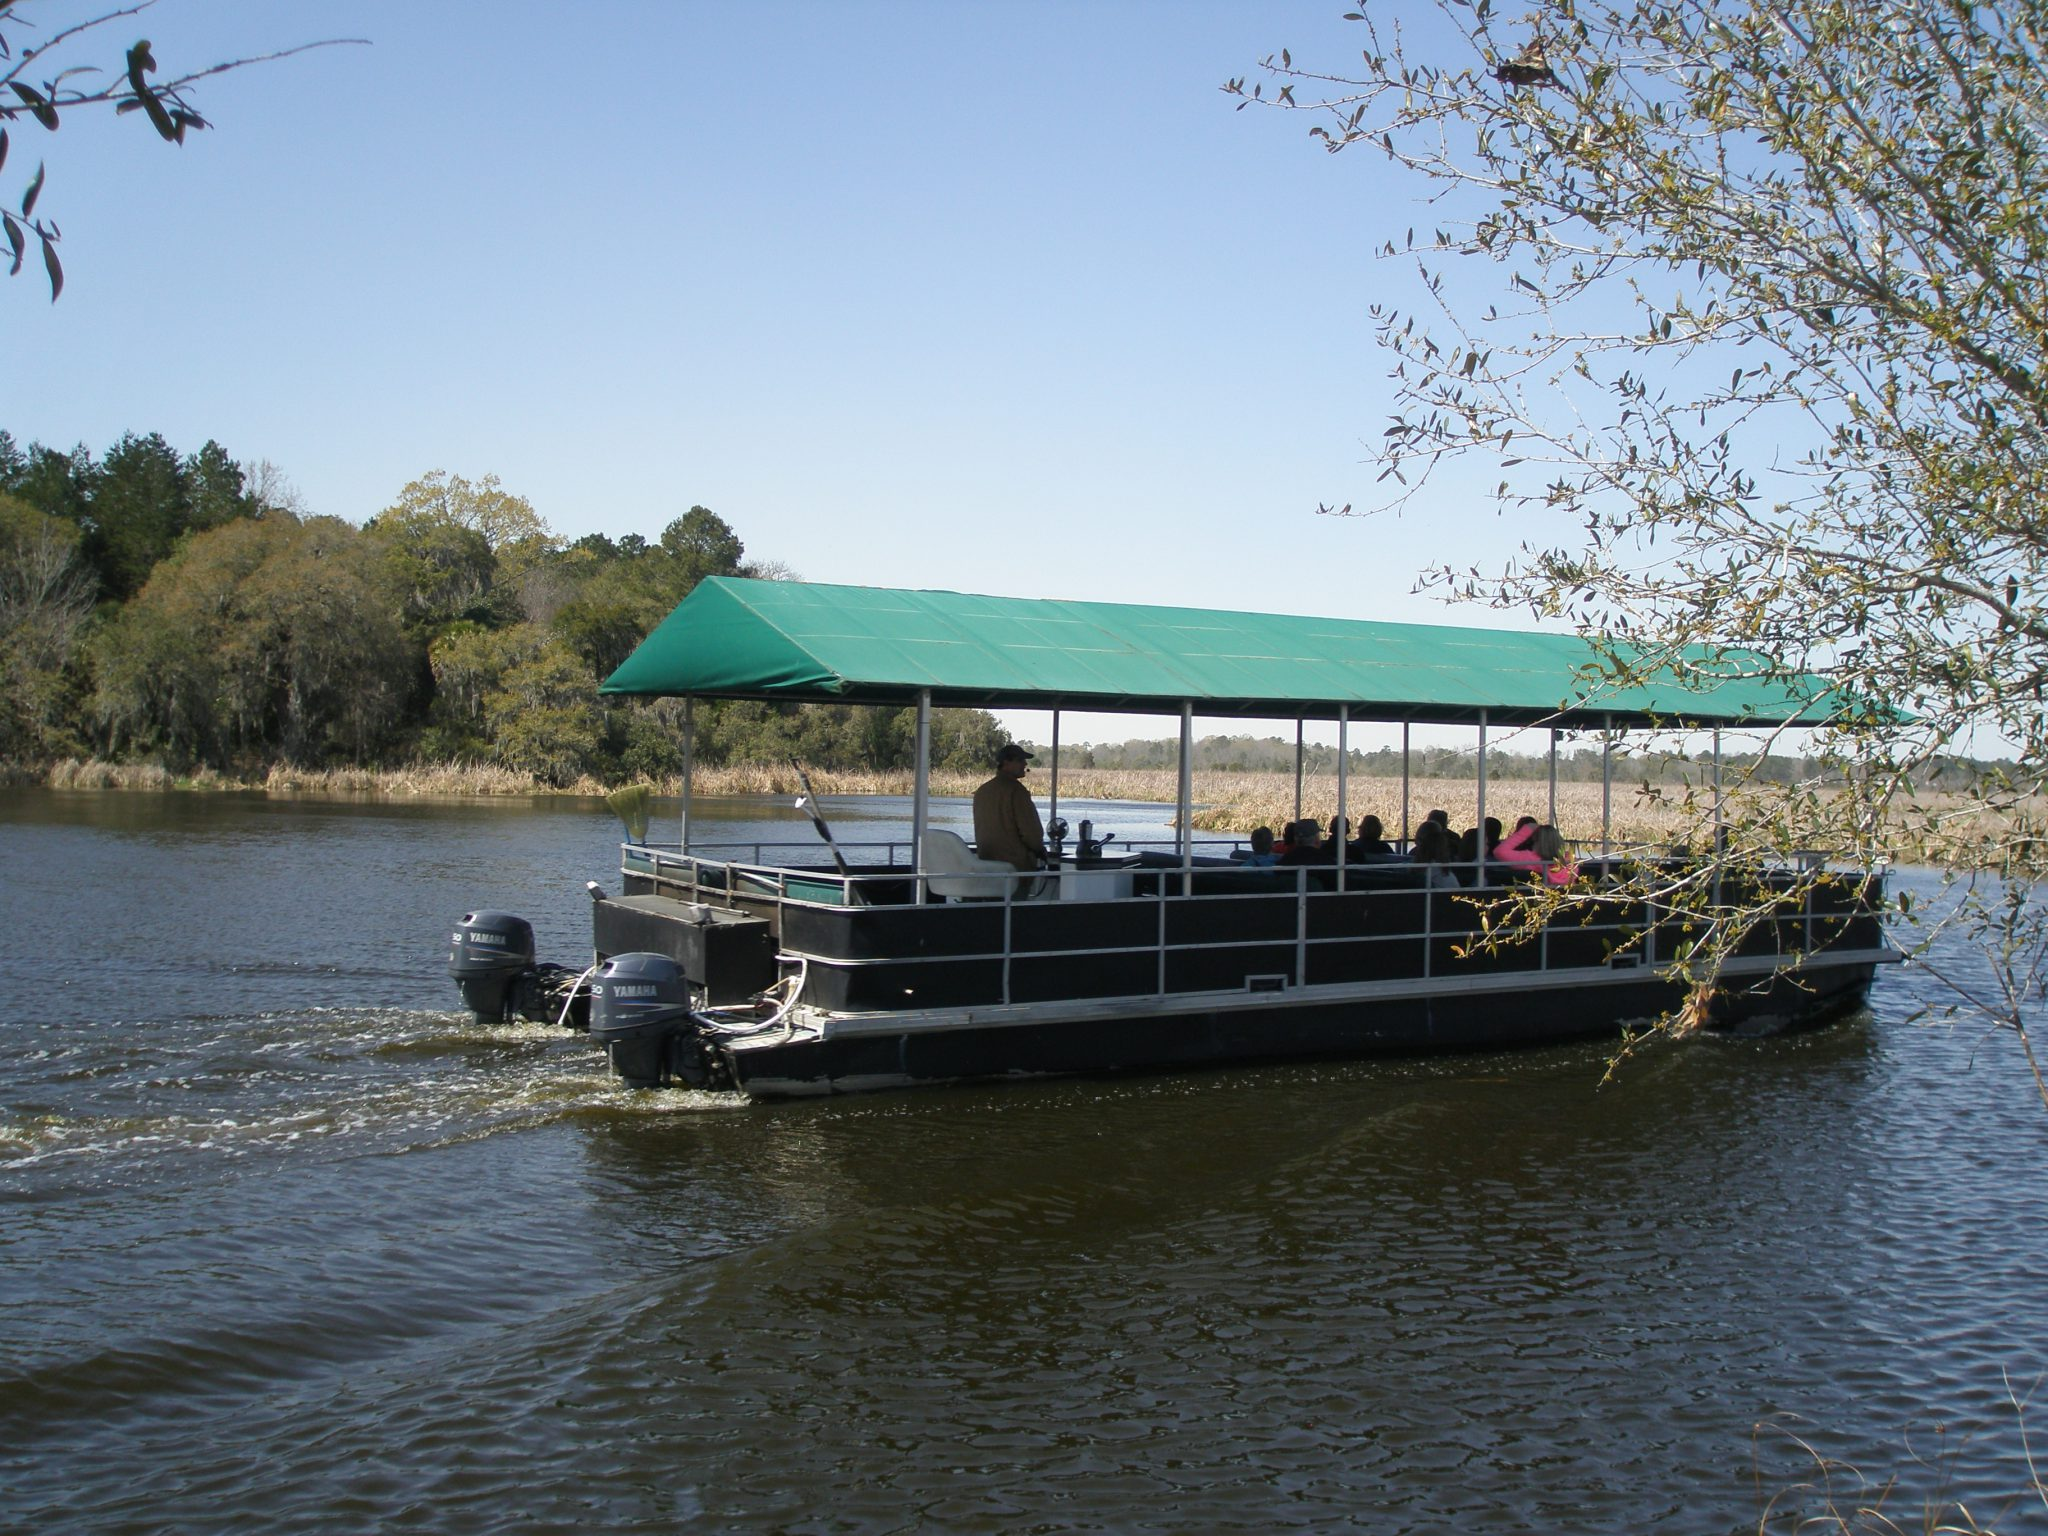 The Spell is temporarily broken as a Nature Tour boat chugs past.